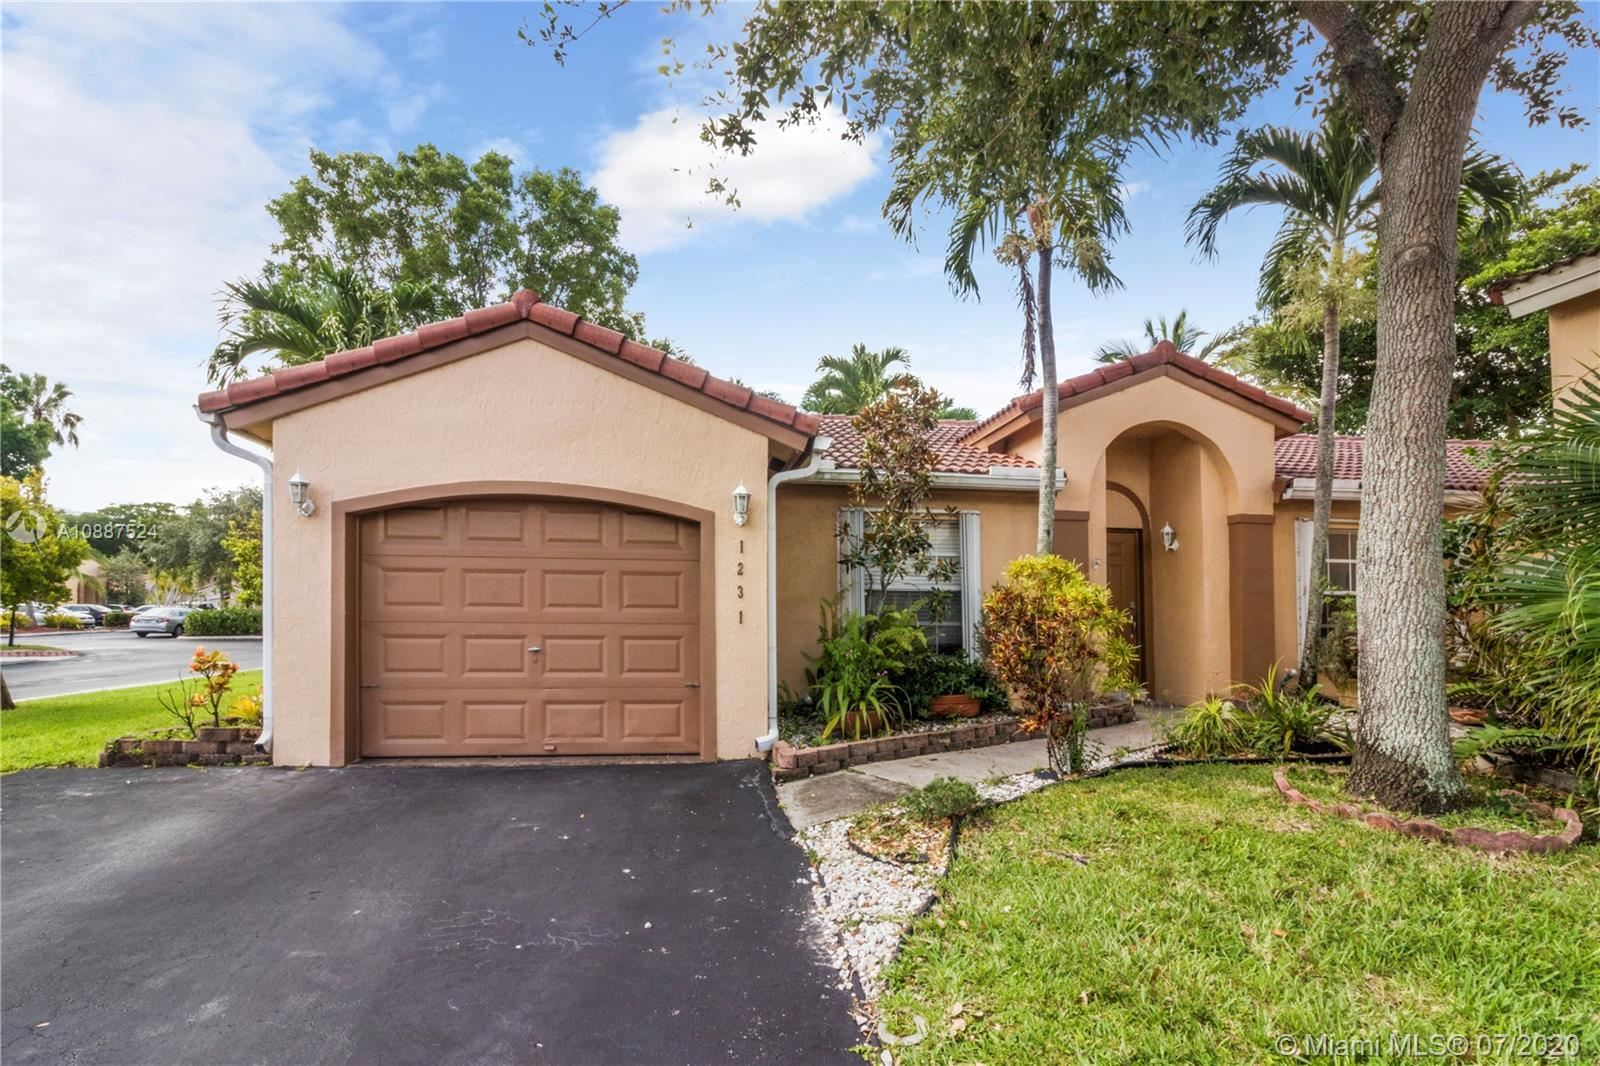 1231 NW 126th Ter, Sunrise, FL 33323 - #: A10887524